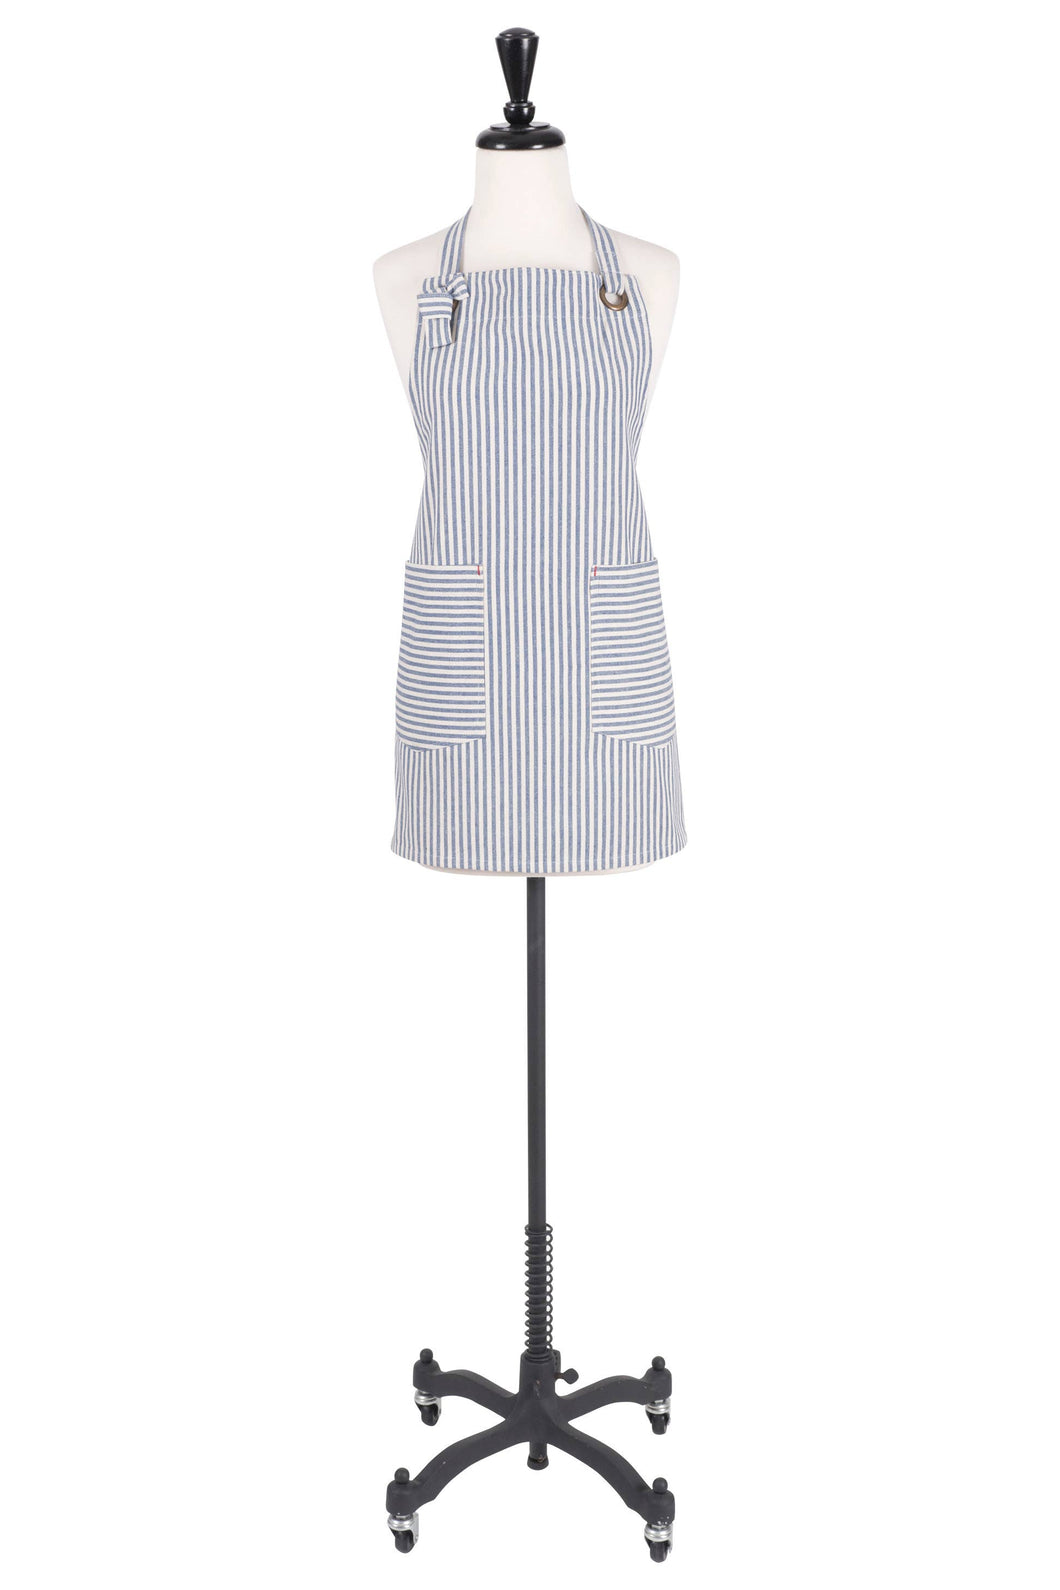 Tailor - Mini Ticking Stripe Apron